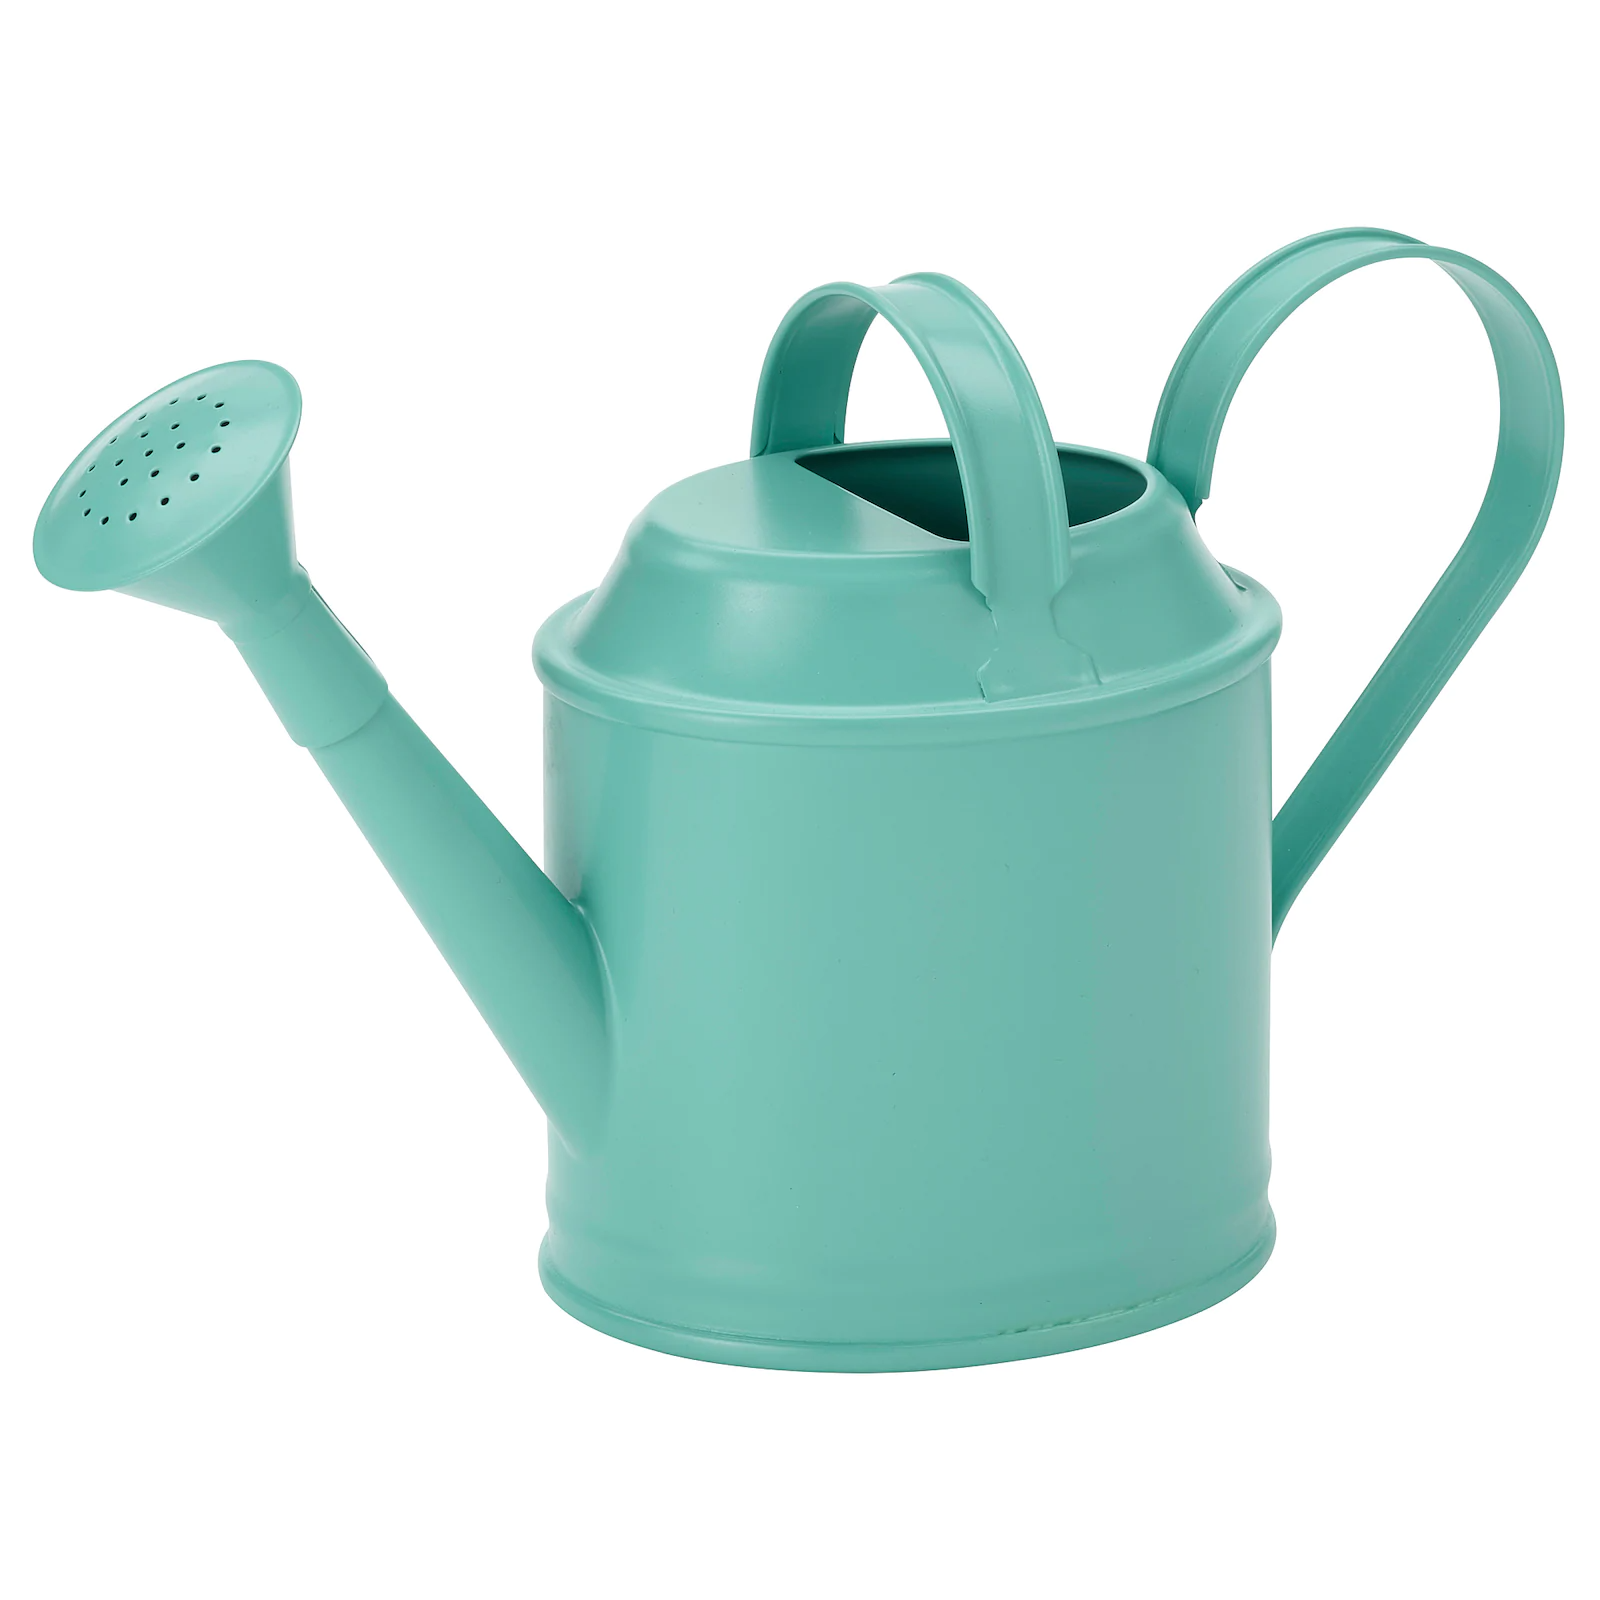 SOCKER Watering can, in/outdoor turquoise1 l